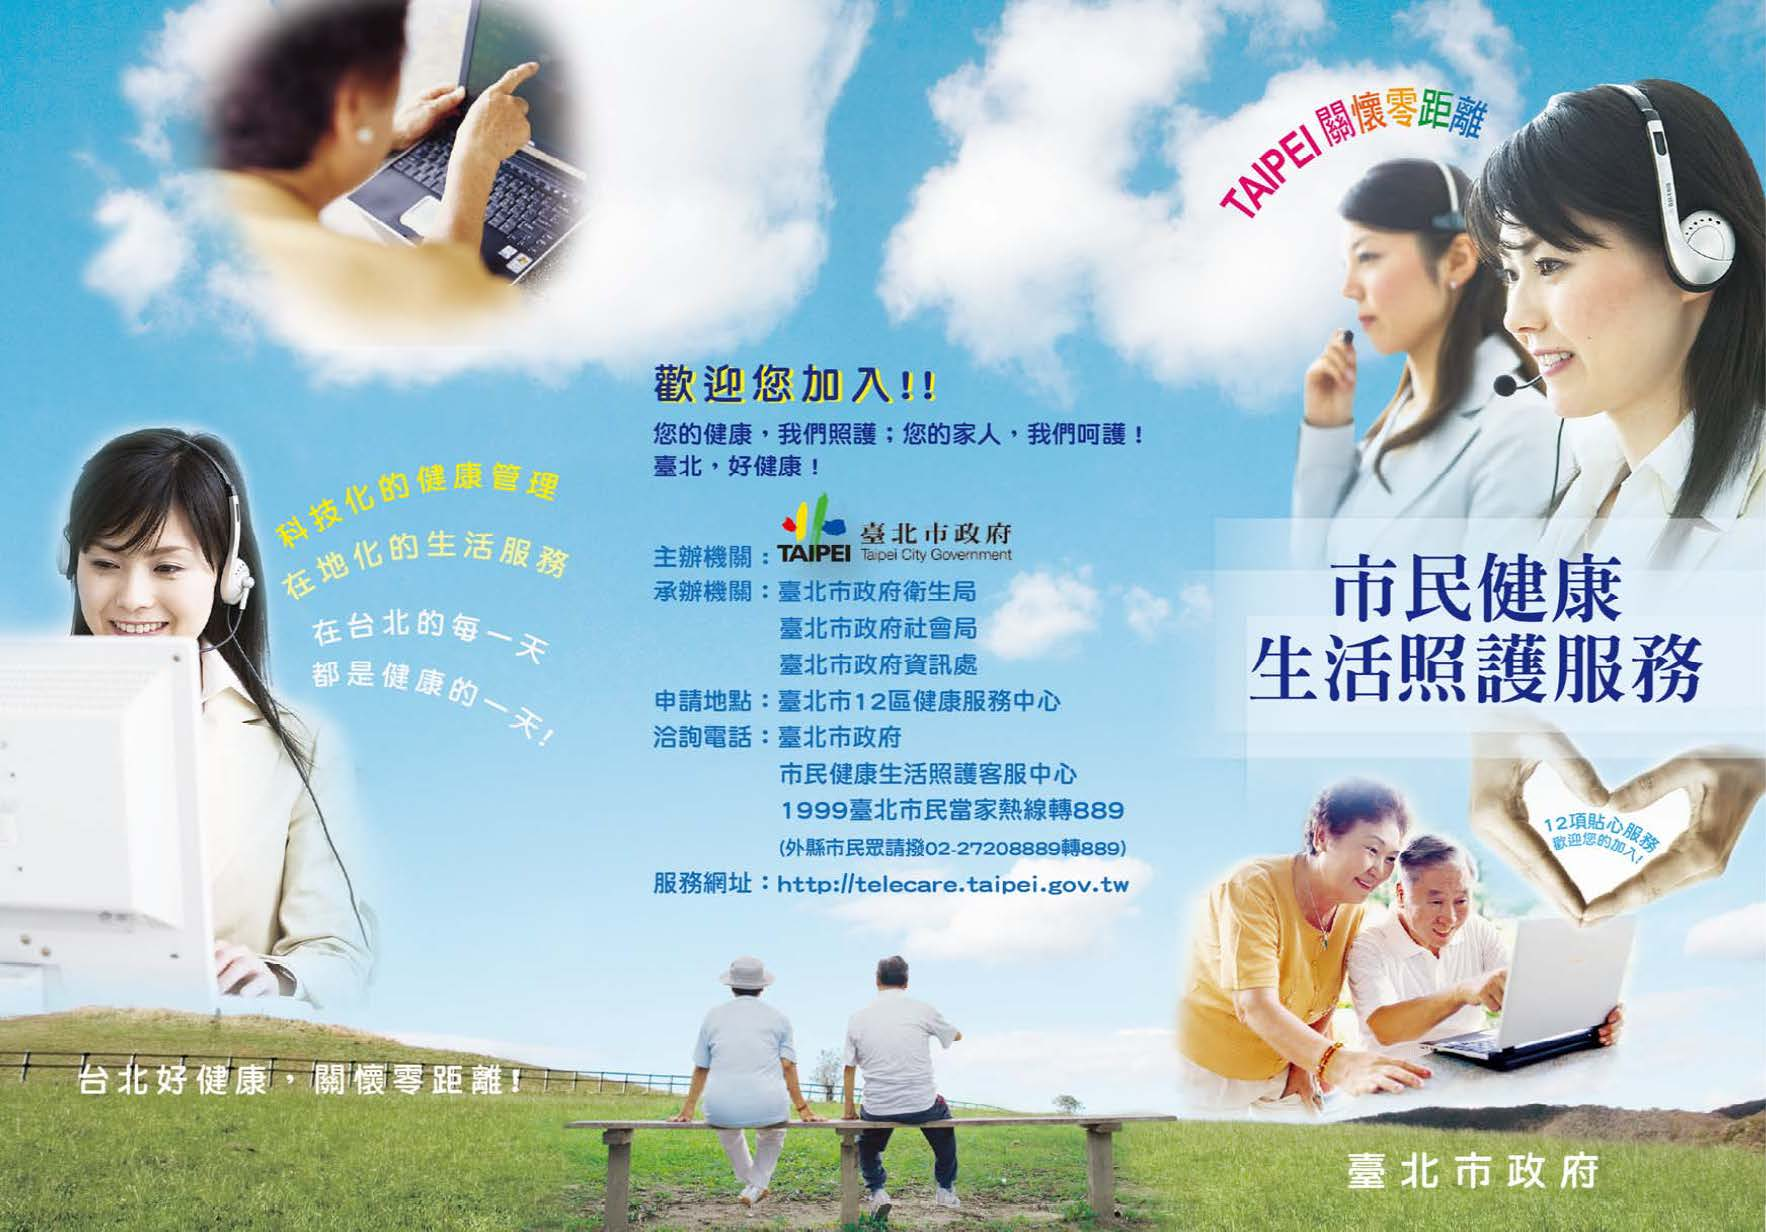 The Obverse Side of the 2012 Taipei Telecare Services Leaflet.